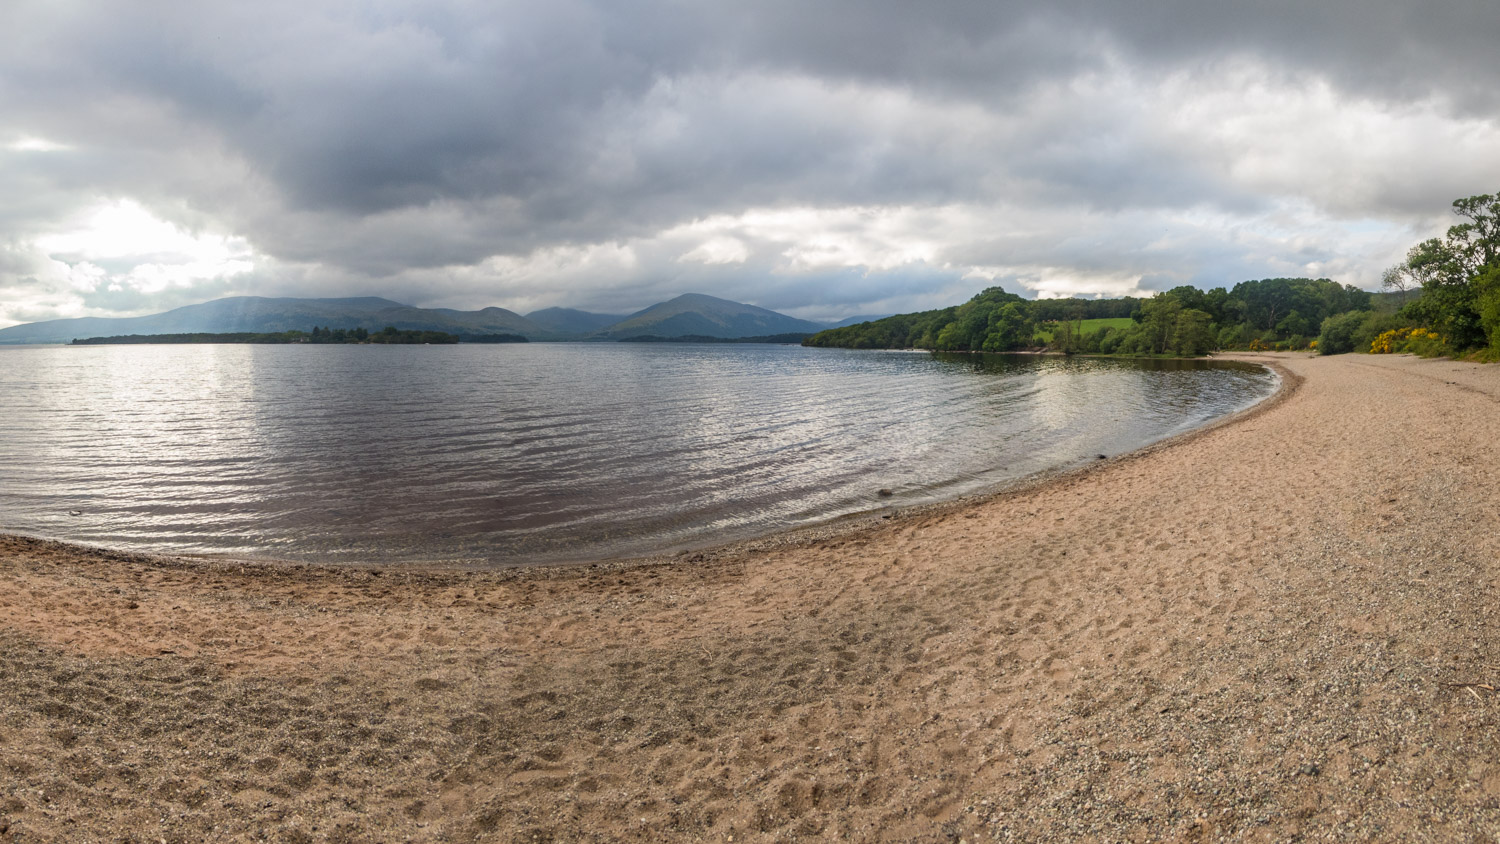 If it wasn't for the camping ban, this would have been a beautiful place to spend the night on the shores of Loch Lomond.